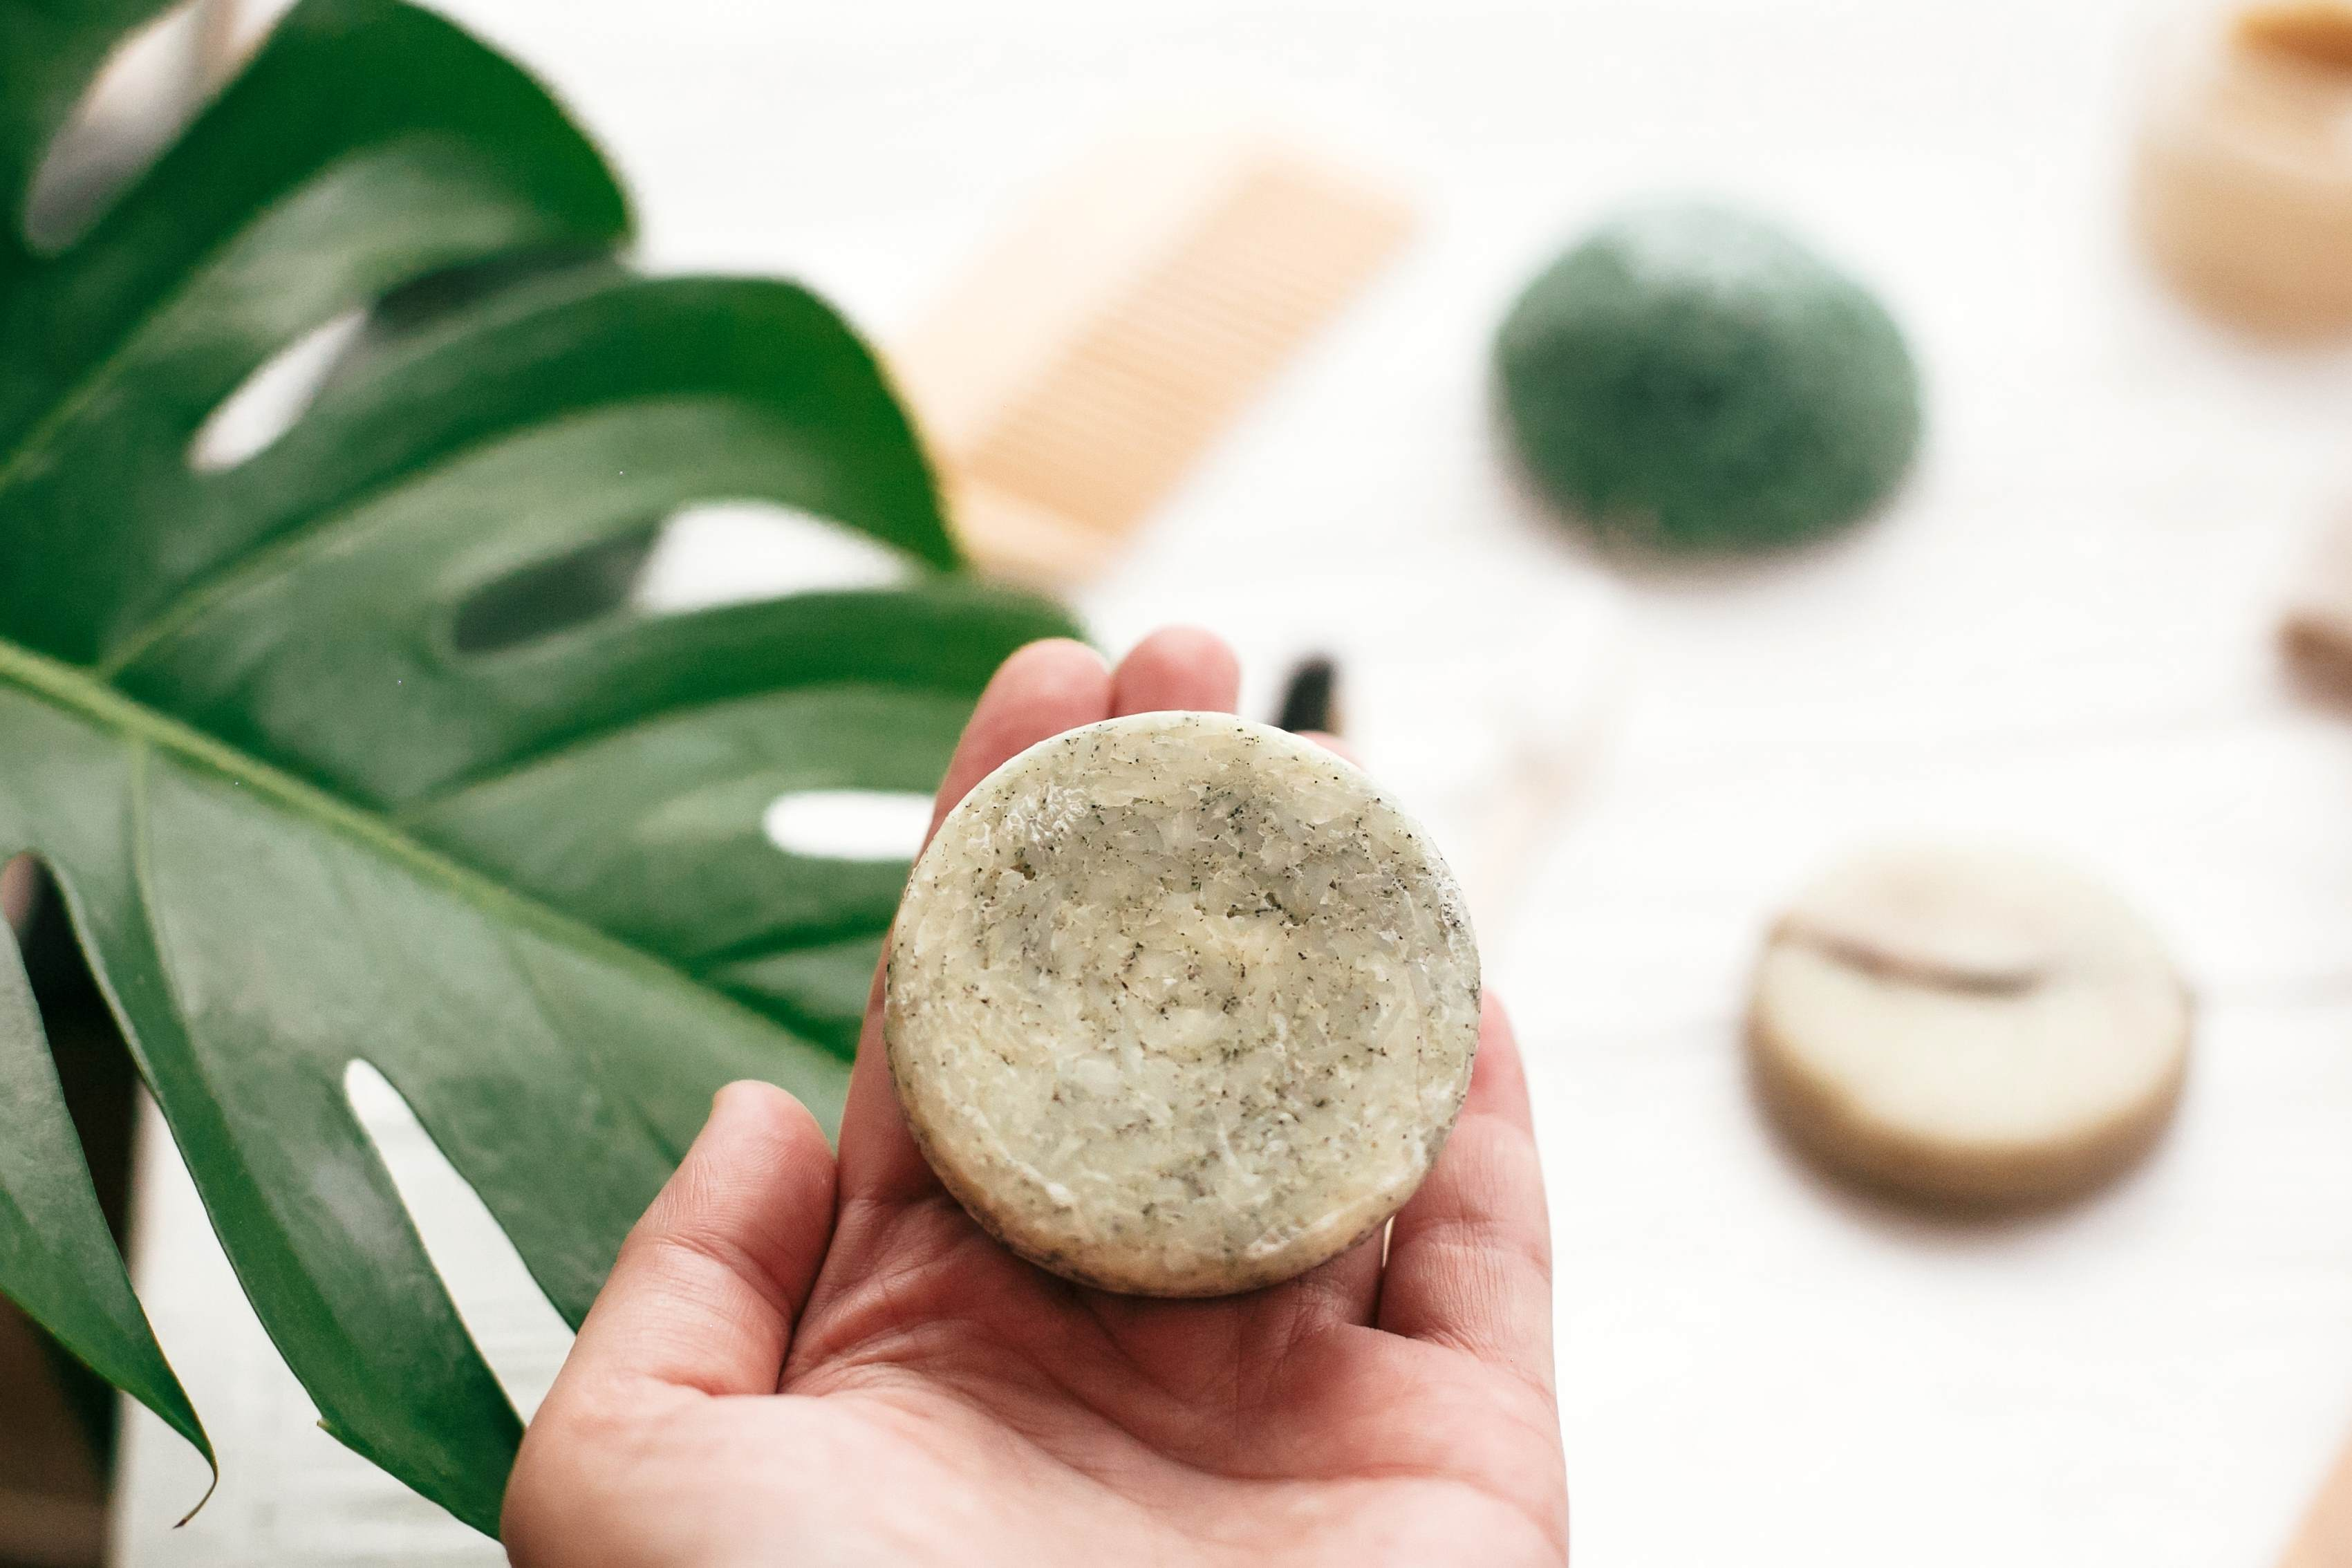 A hand holding a shampoo bar in the foreground with a palm leaf in the background